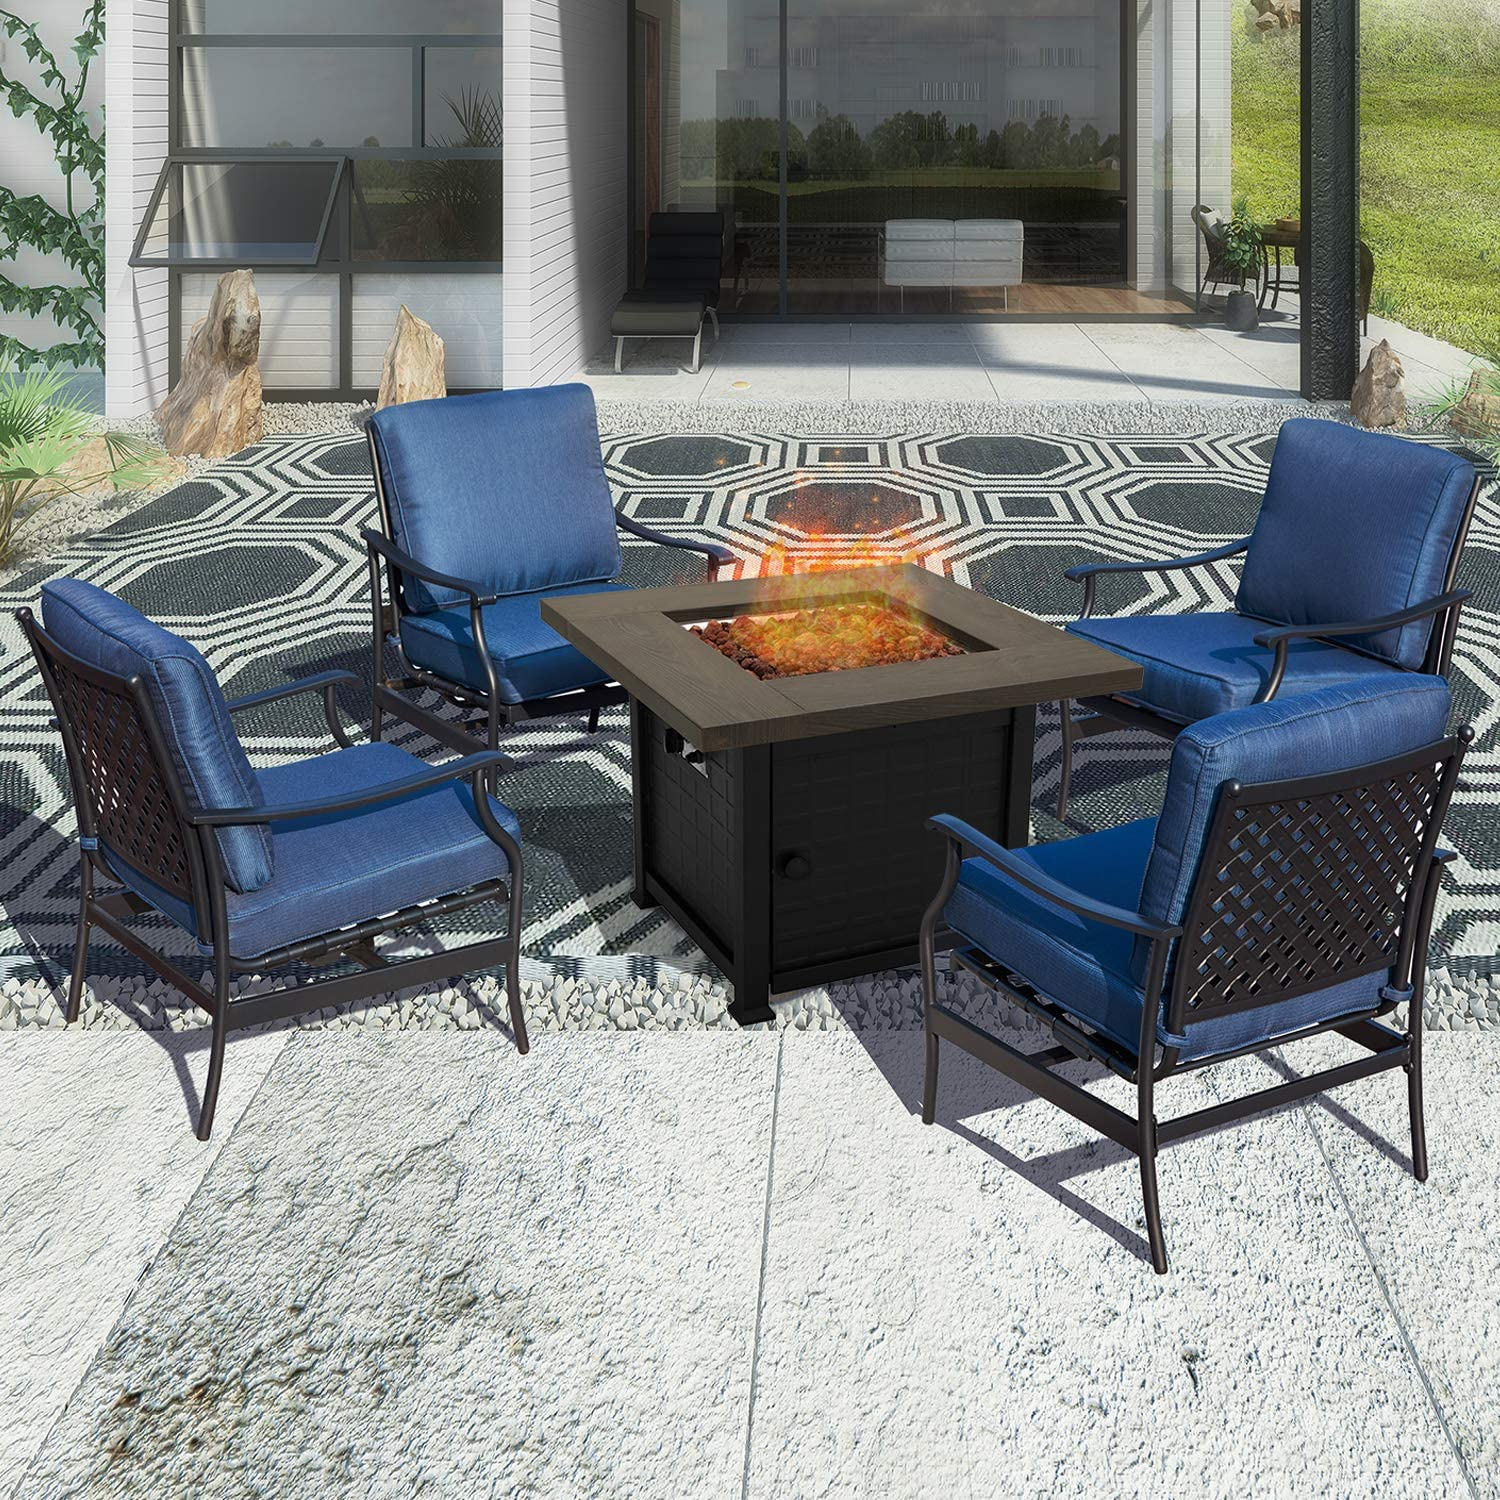 PatioFestival Outdoor Furniture Patio Conversation Set CSA Certification 50,000 BTU 33.9 Inch Propane Fire Pit Table Sets with Rocking Chairs (5 Pcs,Blue)